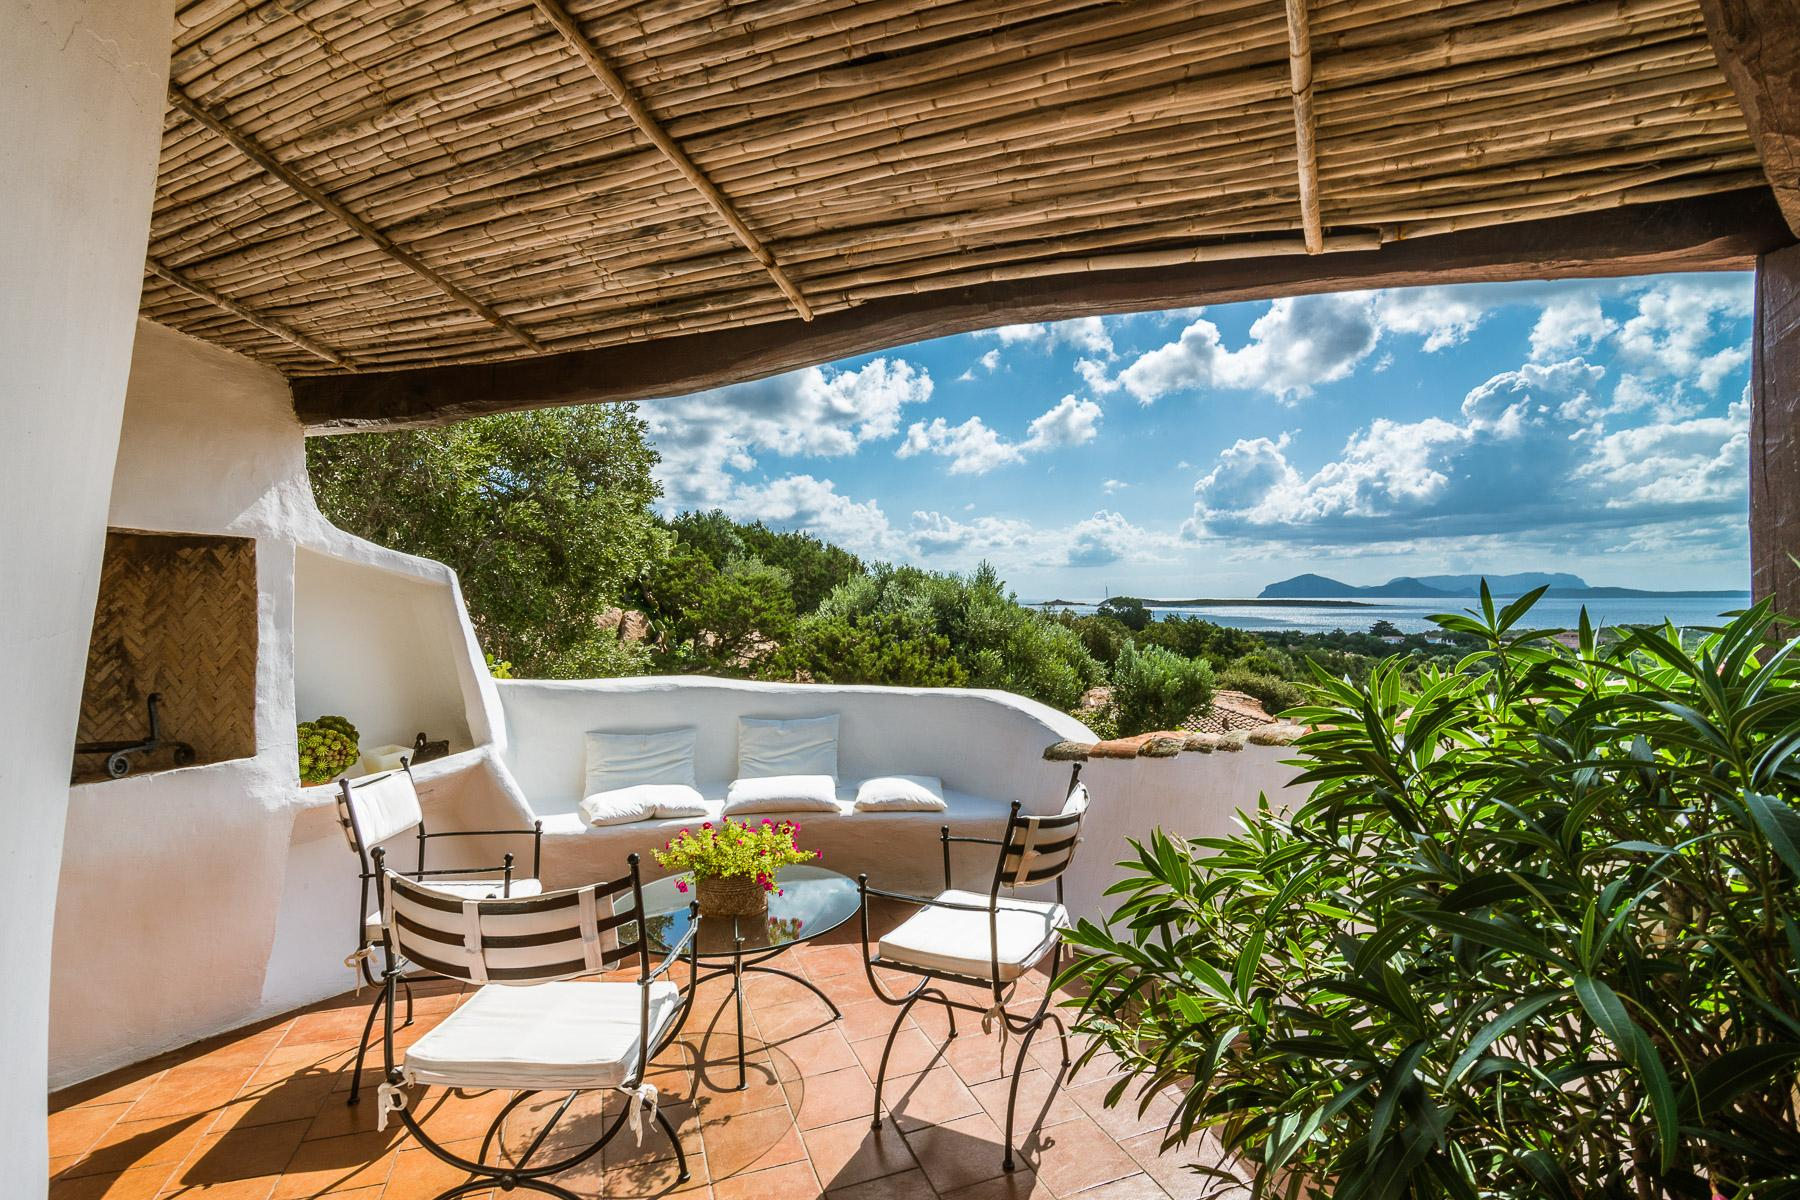 Porto Cervo La Celvia Wonderful Villa by Arch. S.Couelle - 4